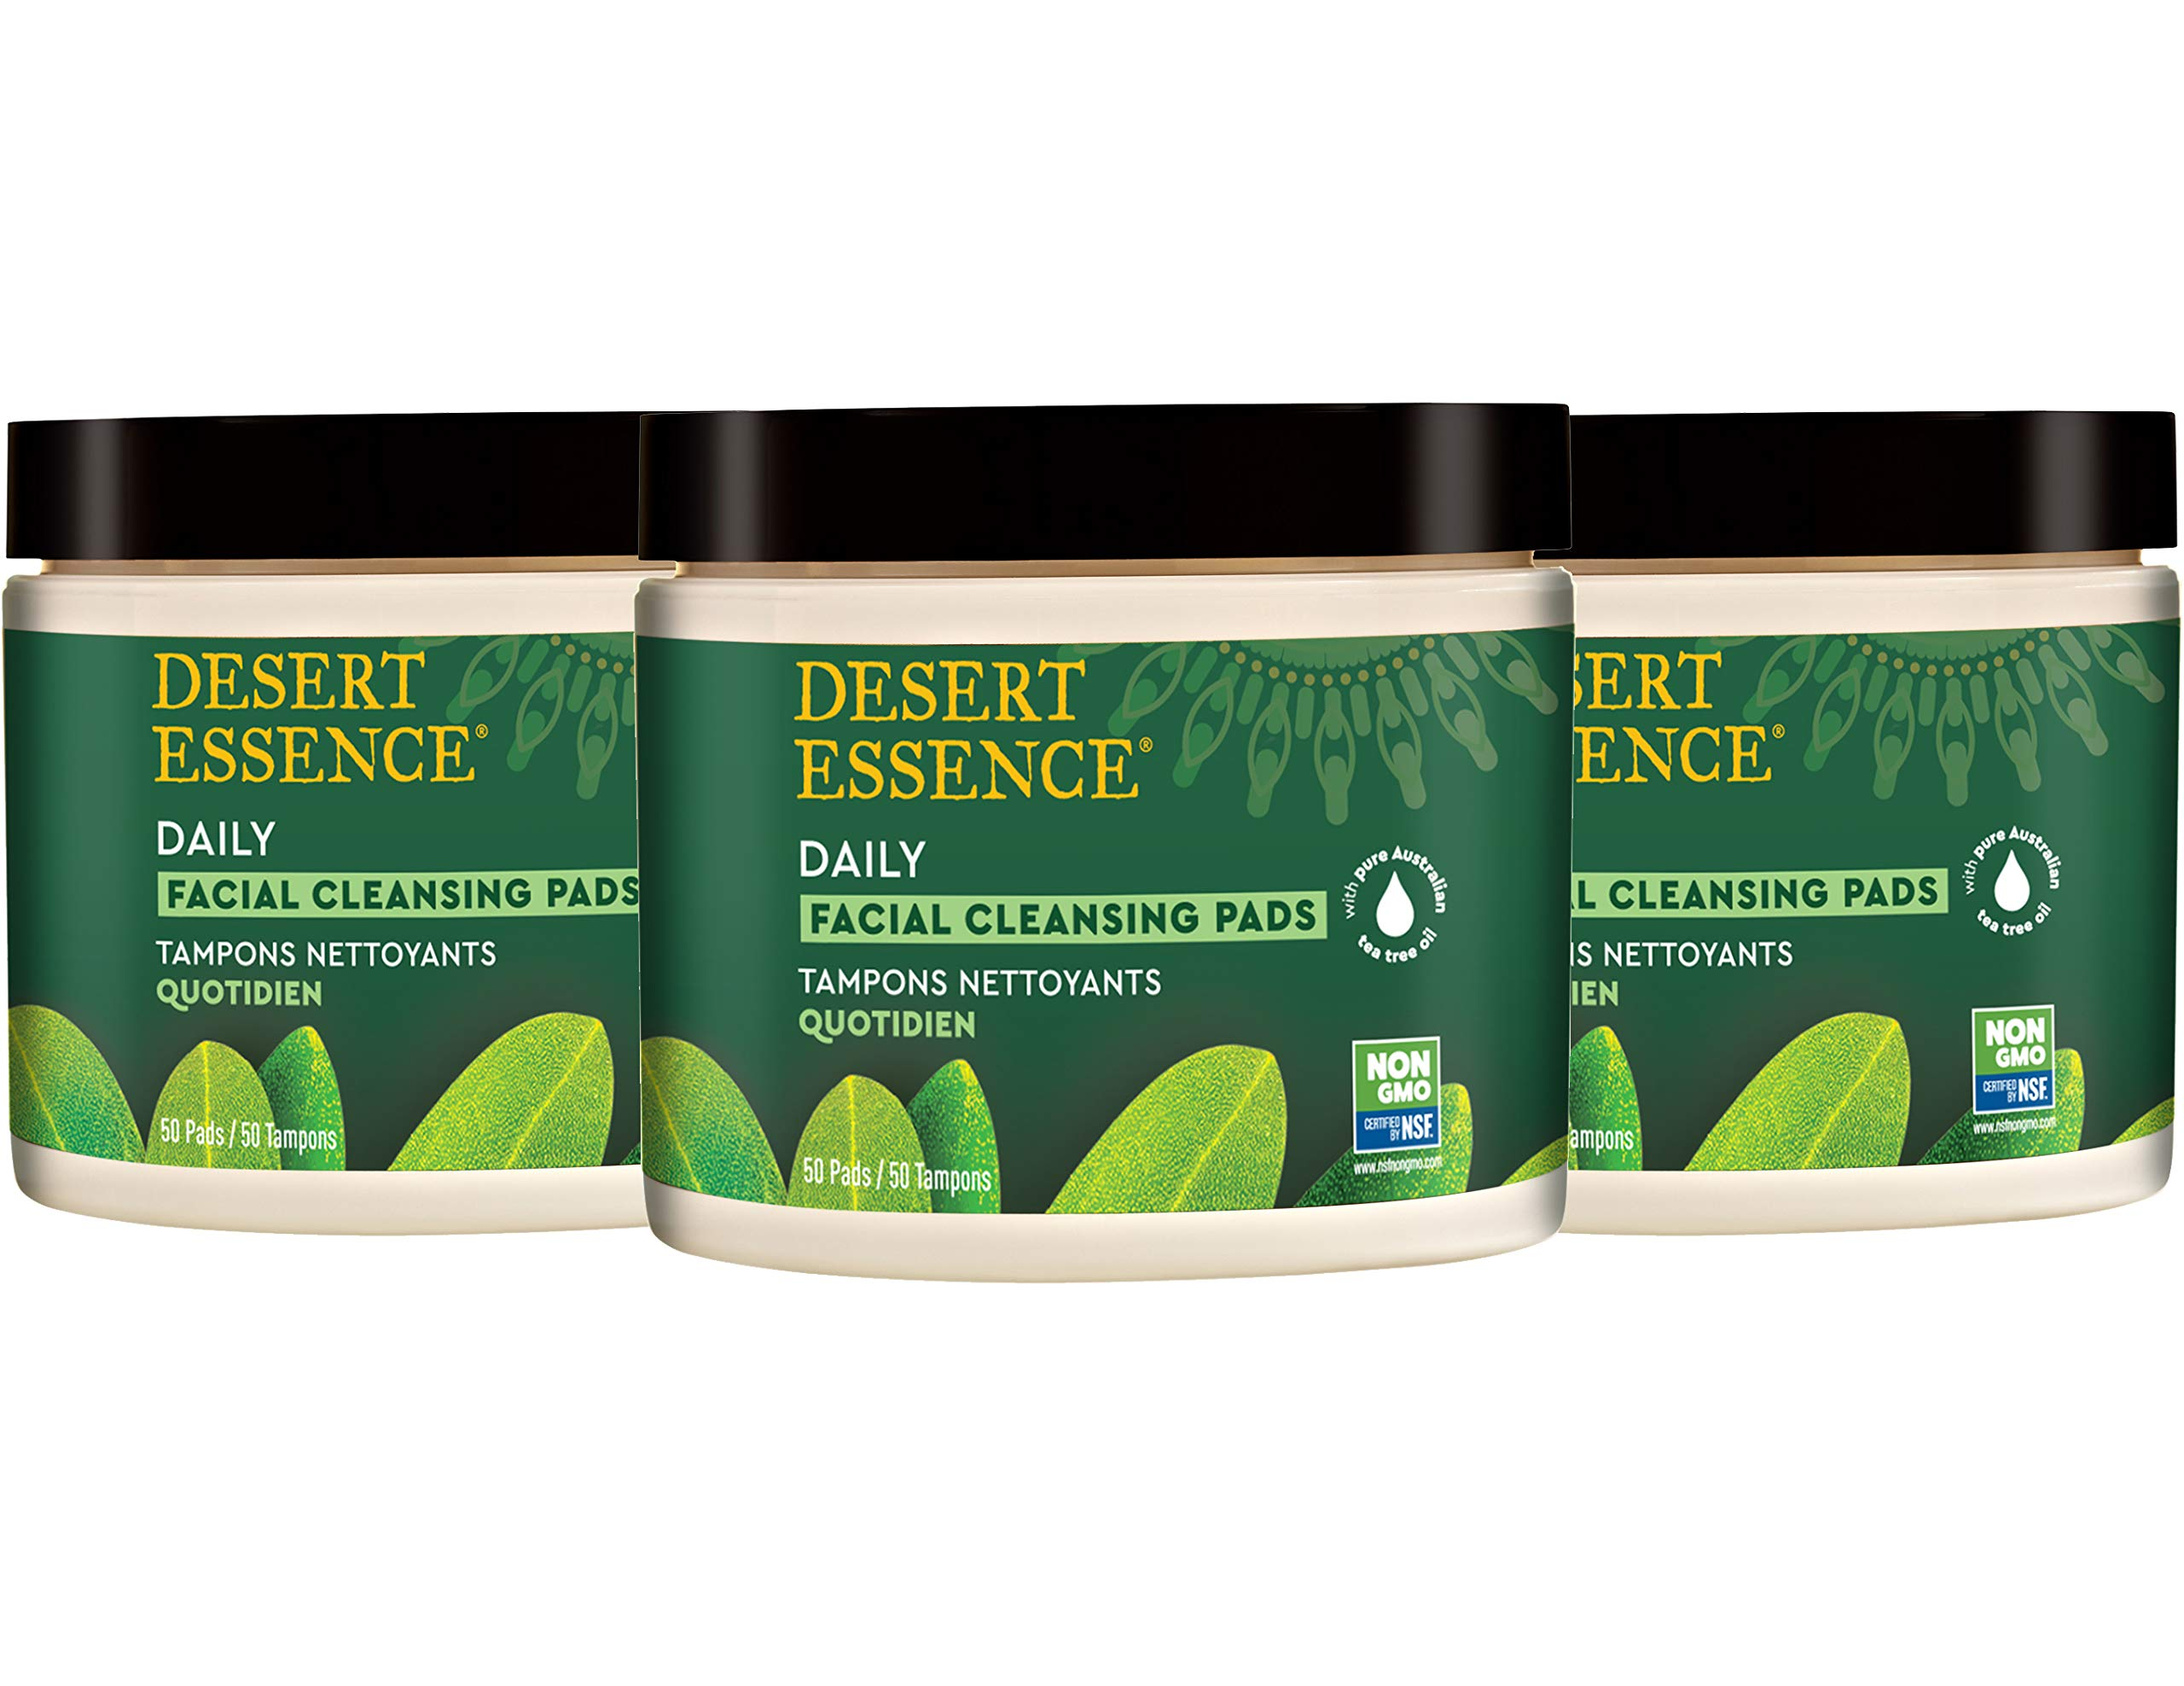 Desert Essence Natural Tea Tree Oil Facial Cleansing Pads - 50 Count - Pack of 3 - Face Cleanser - Soothes & Calms Skin - Makeup Remover Pads - Removes Oil & Dirt - Great for Travel - Essential Oils